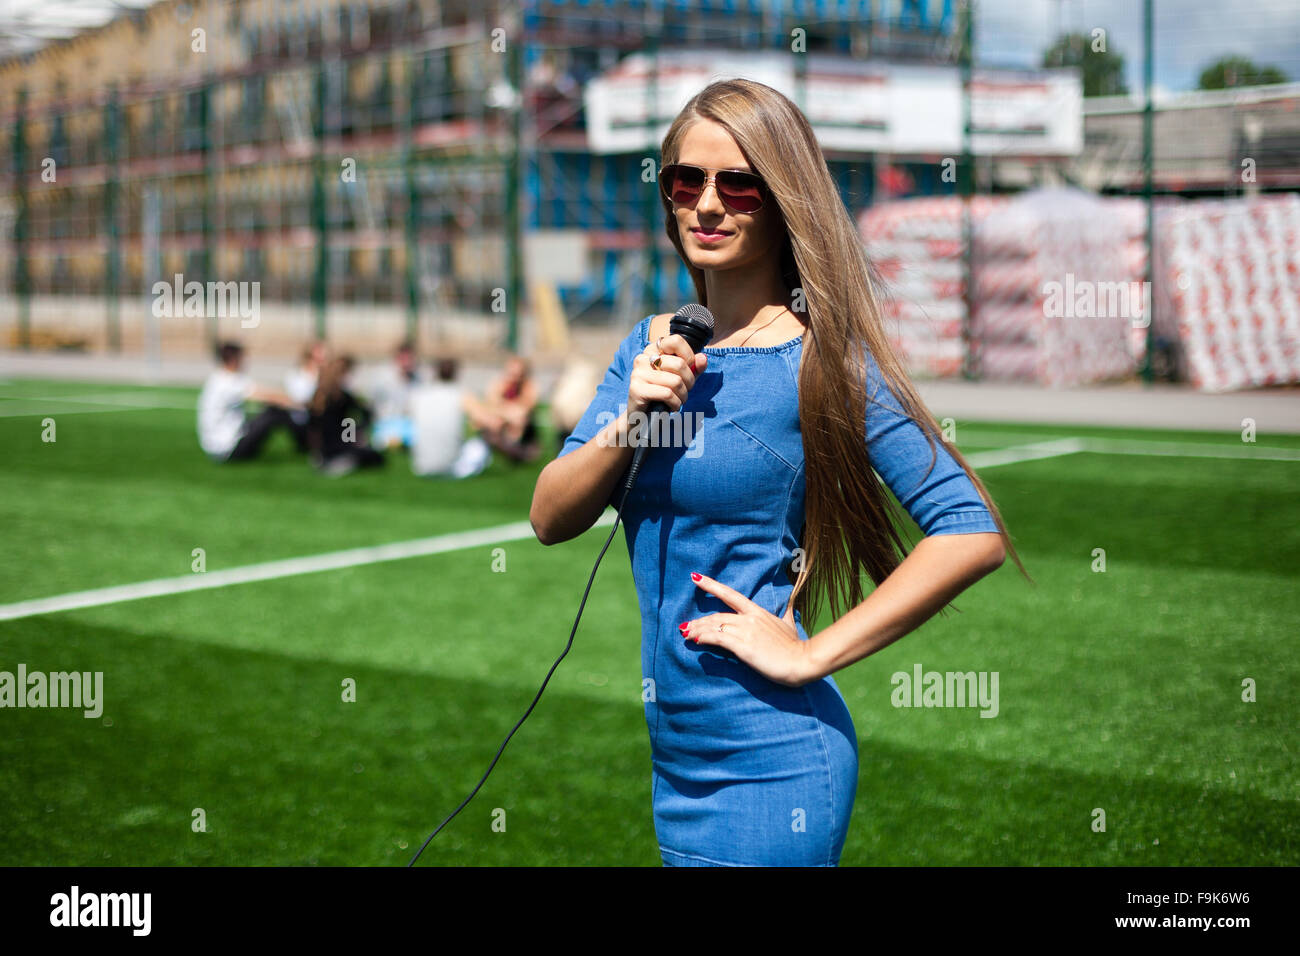 Pretty girl-reporter with microphone on a stadium. - Stock Image